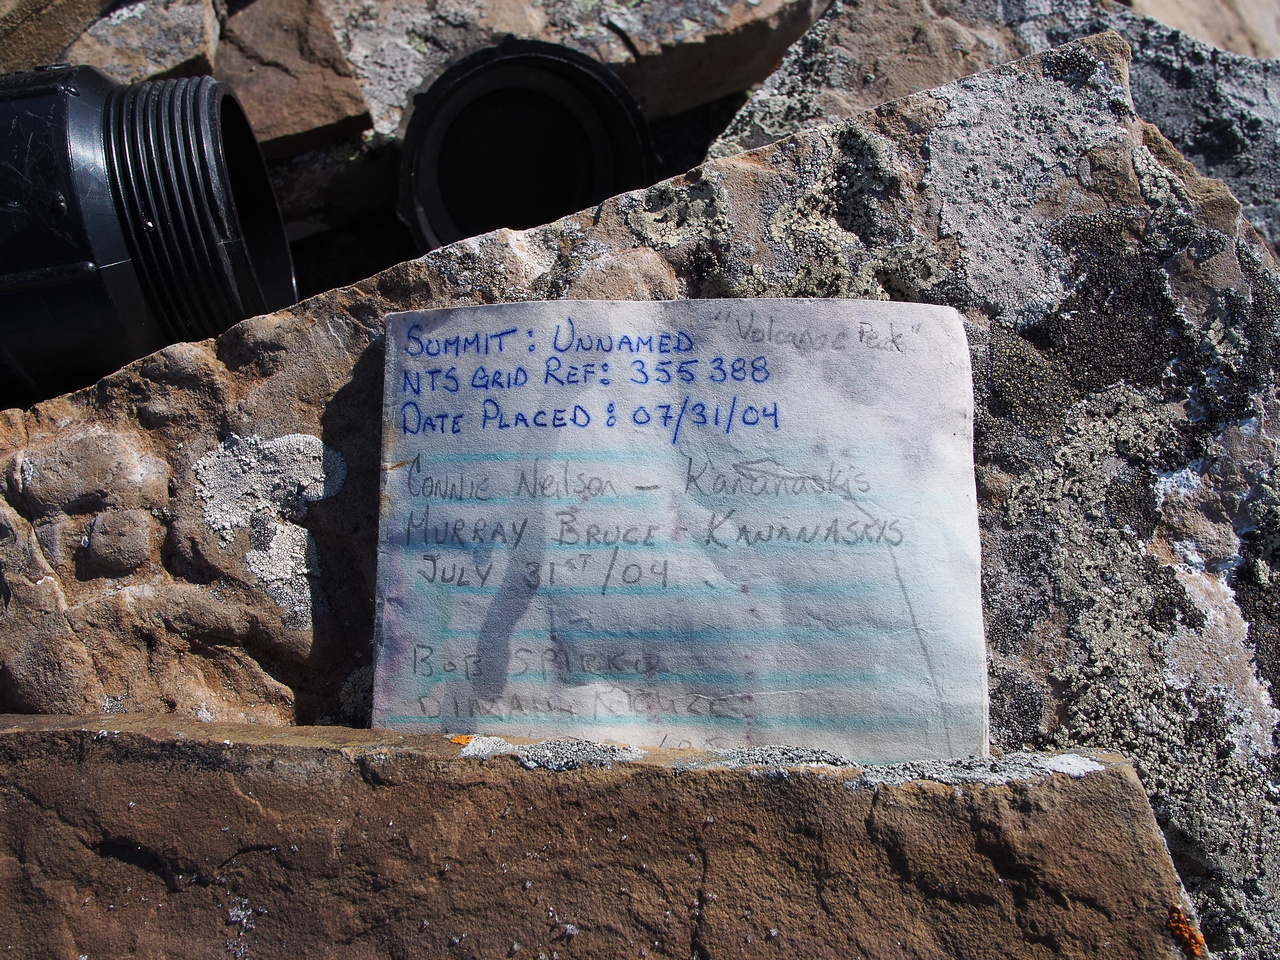 The summit register is almost 10 years old and isn't even close to half full. That should worry you.